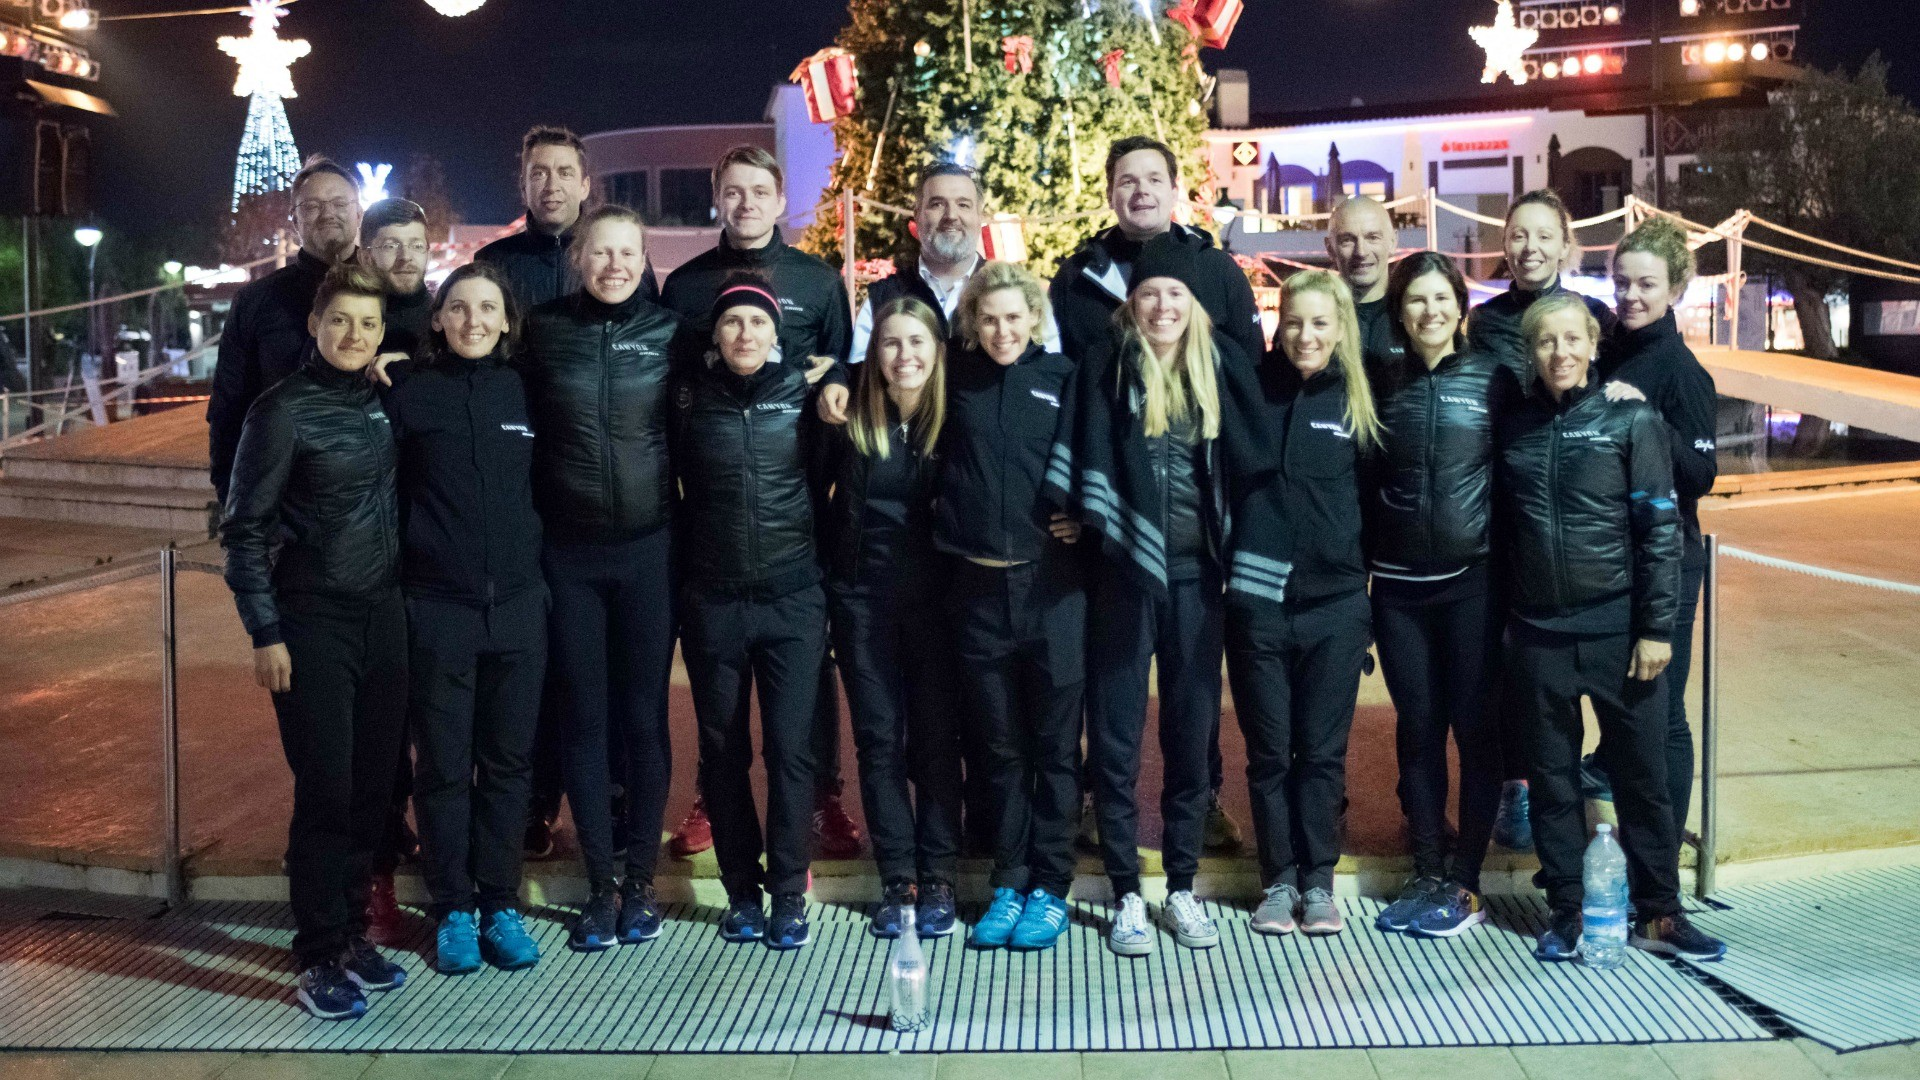 The finalists joined Canyon//SRAM team at their training amp in Majorca